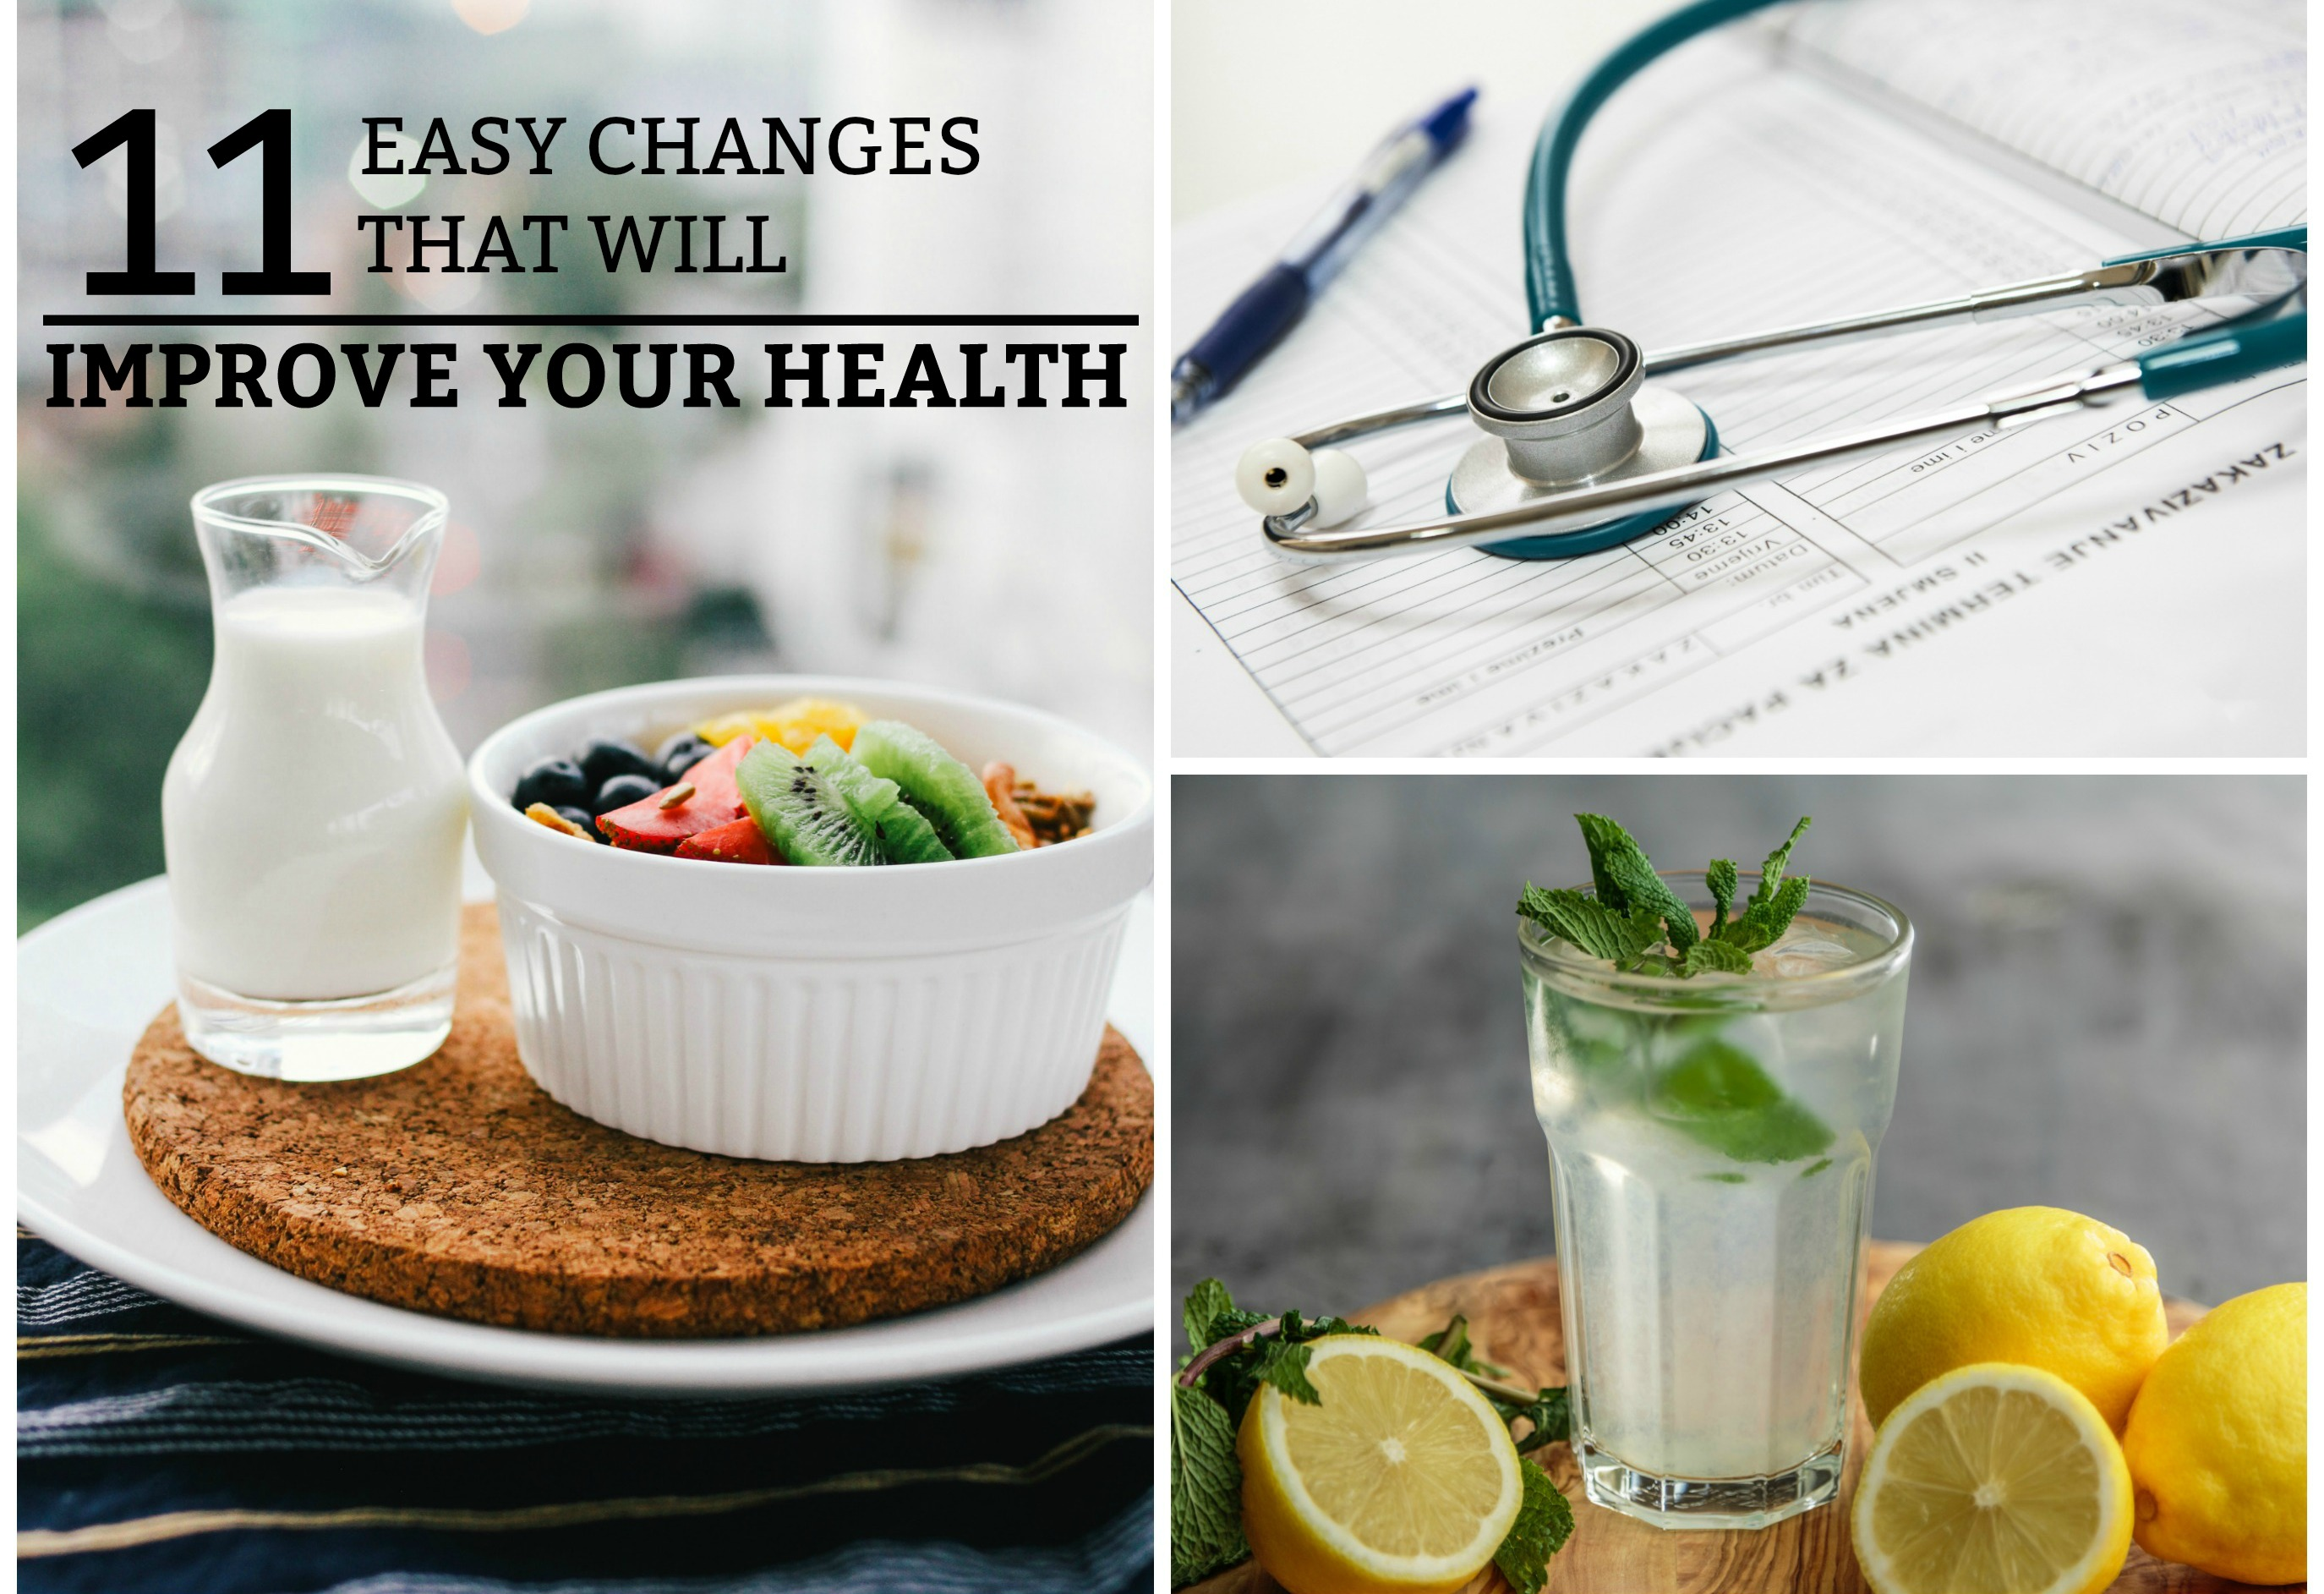 11 Easy Changes That Will Improve Your Health - A practical guide to improving your health with 11 easy steps. www.tradingaverage.com